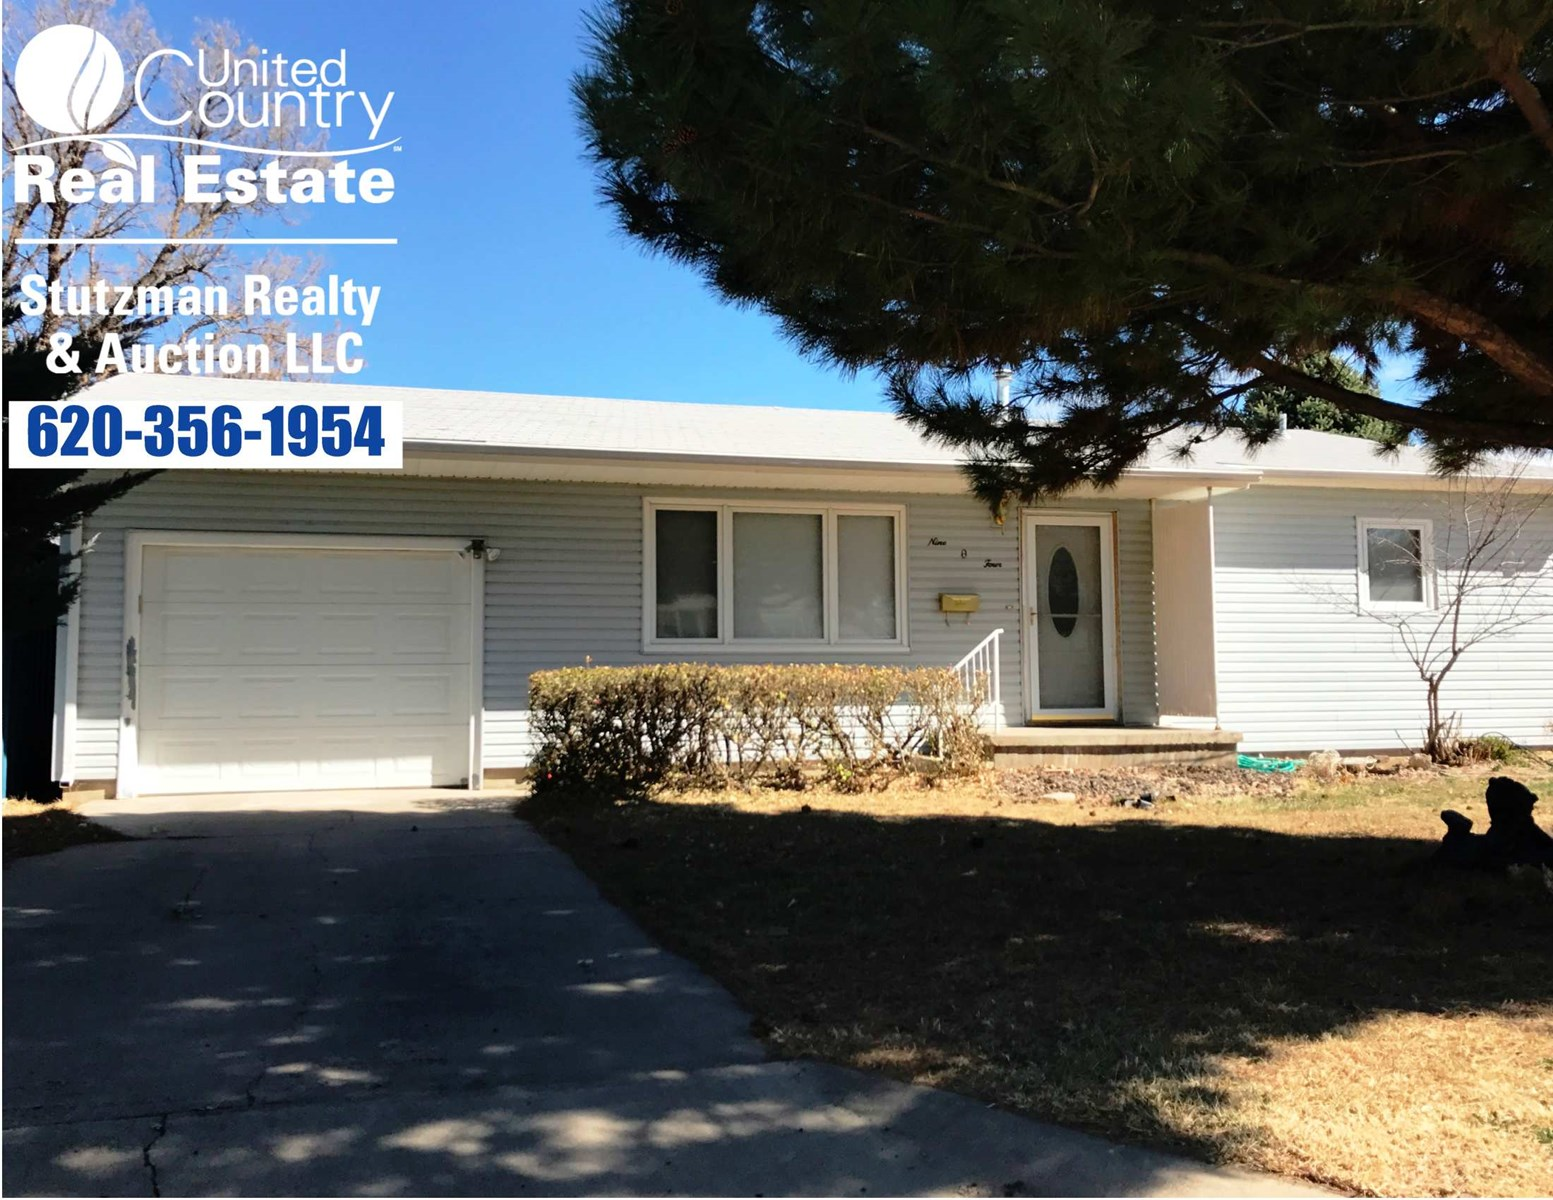 AFFORDABLE MOVE-IN READY HOME FOR SALE IN ULYSSES, KANSAS